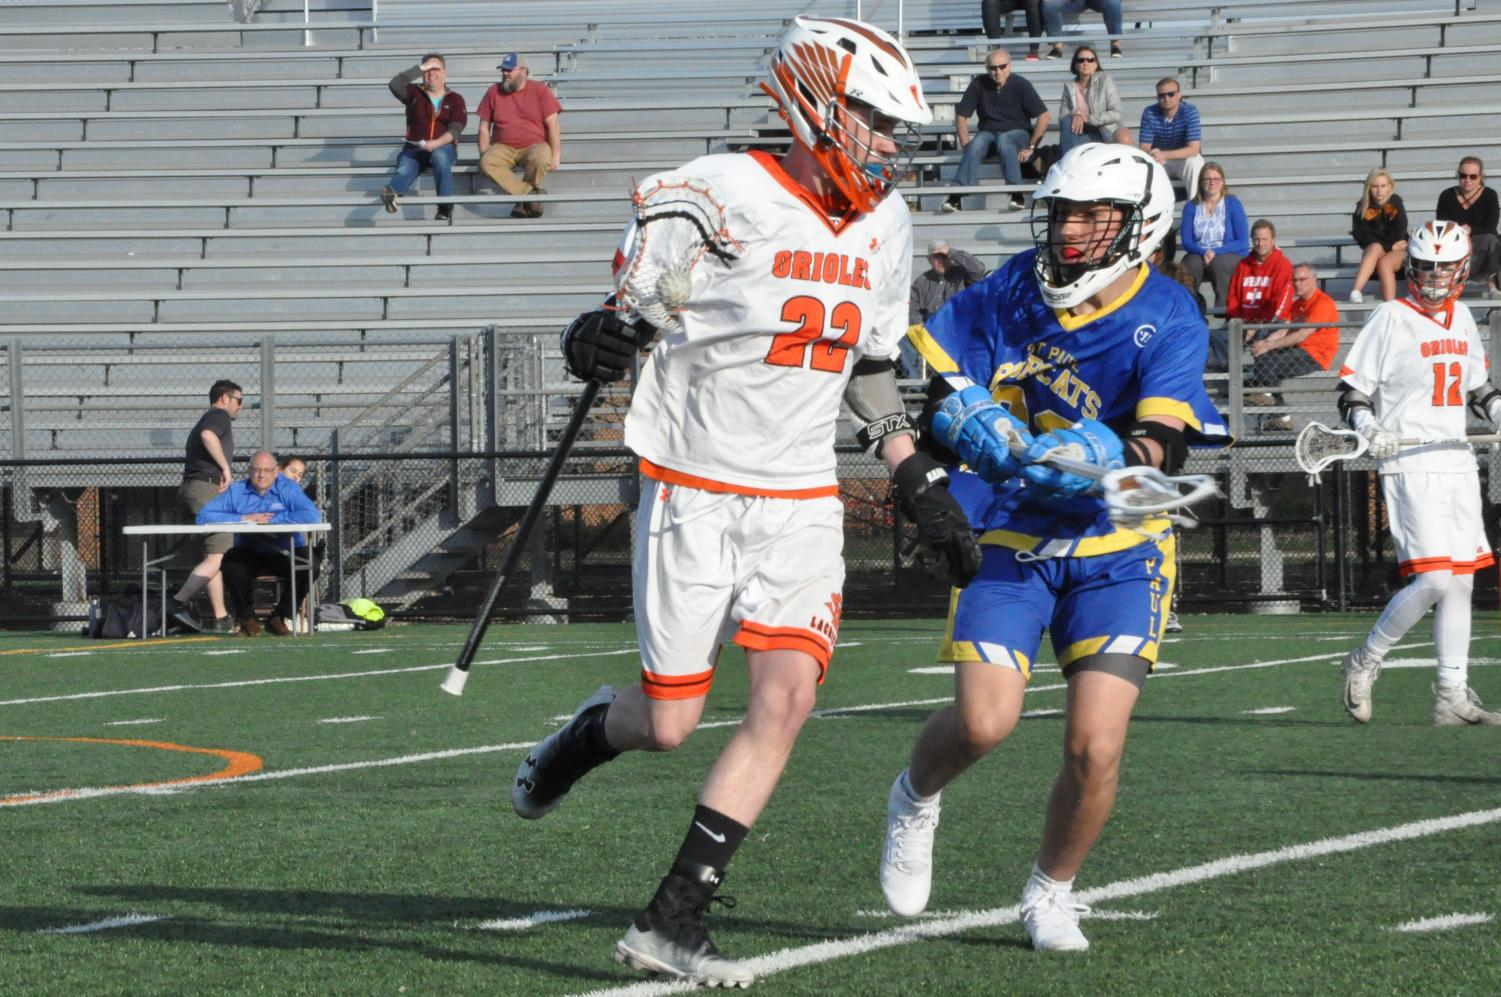 Sophomore Will Schoenecker twirls his stick in order to maintain possession. The game occurred at 5 p.m. April 25 at the St. Louis Park stadium.